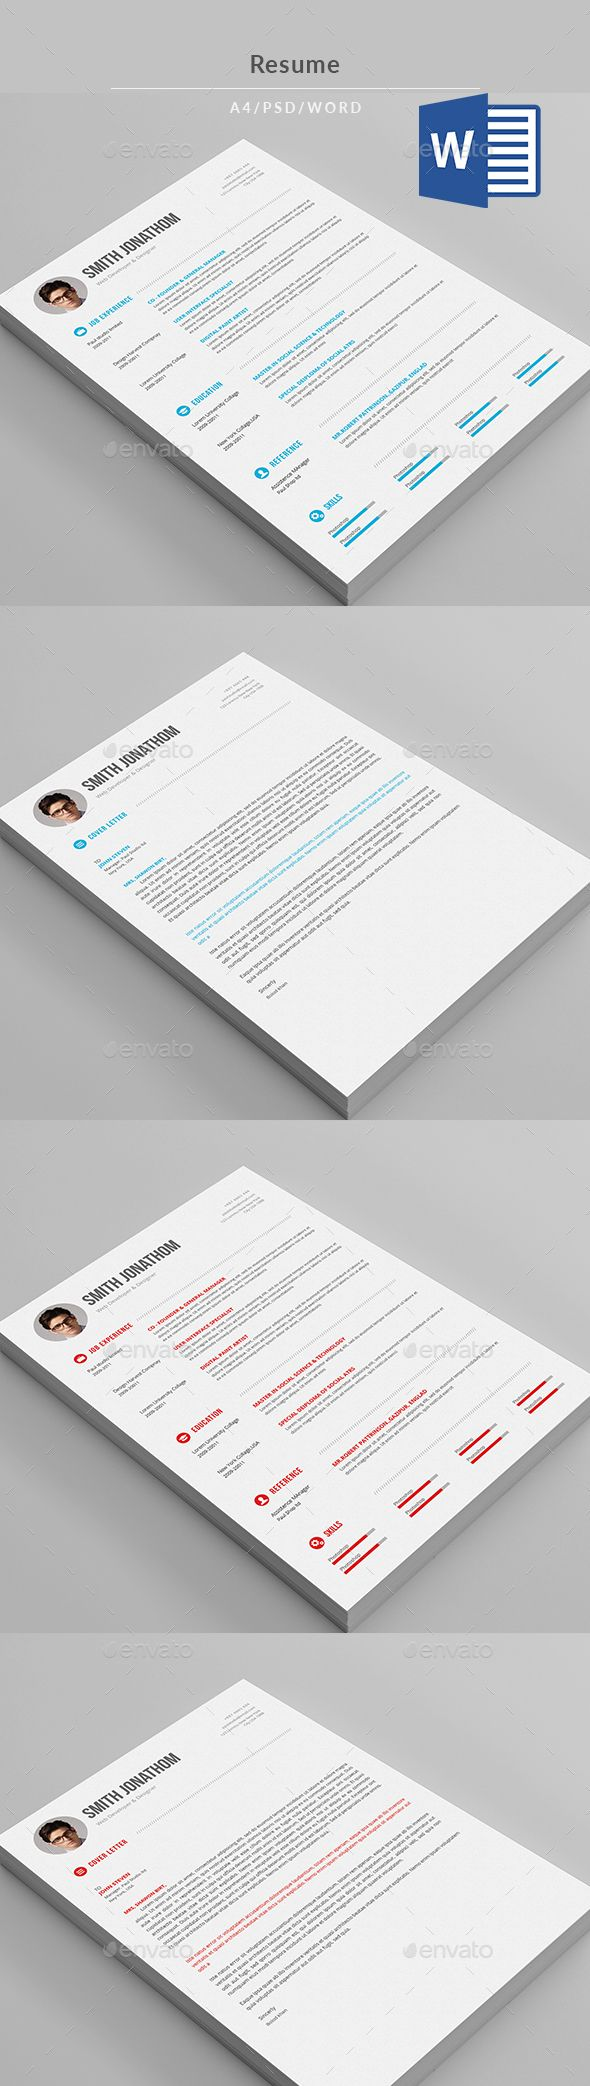 Best Documents Design Ideas Images On   Resume